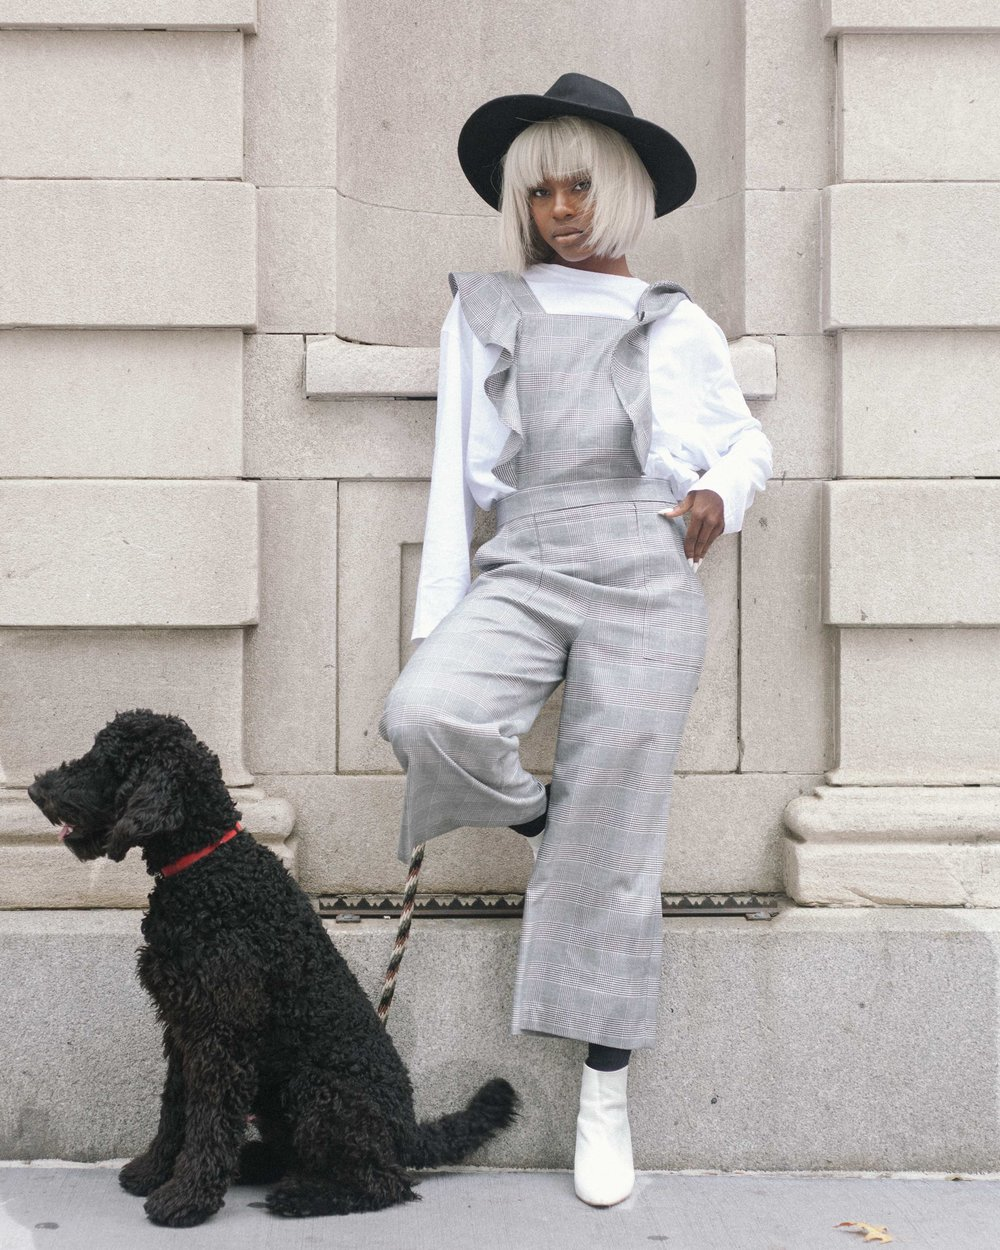 female model fashion photography with a black dog. captured by jarrod anderson in nyc.